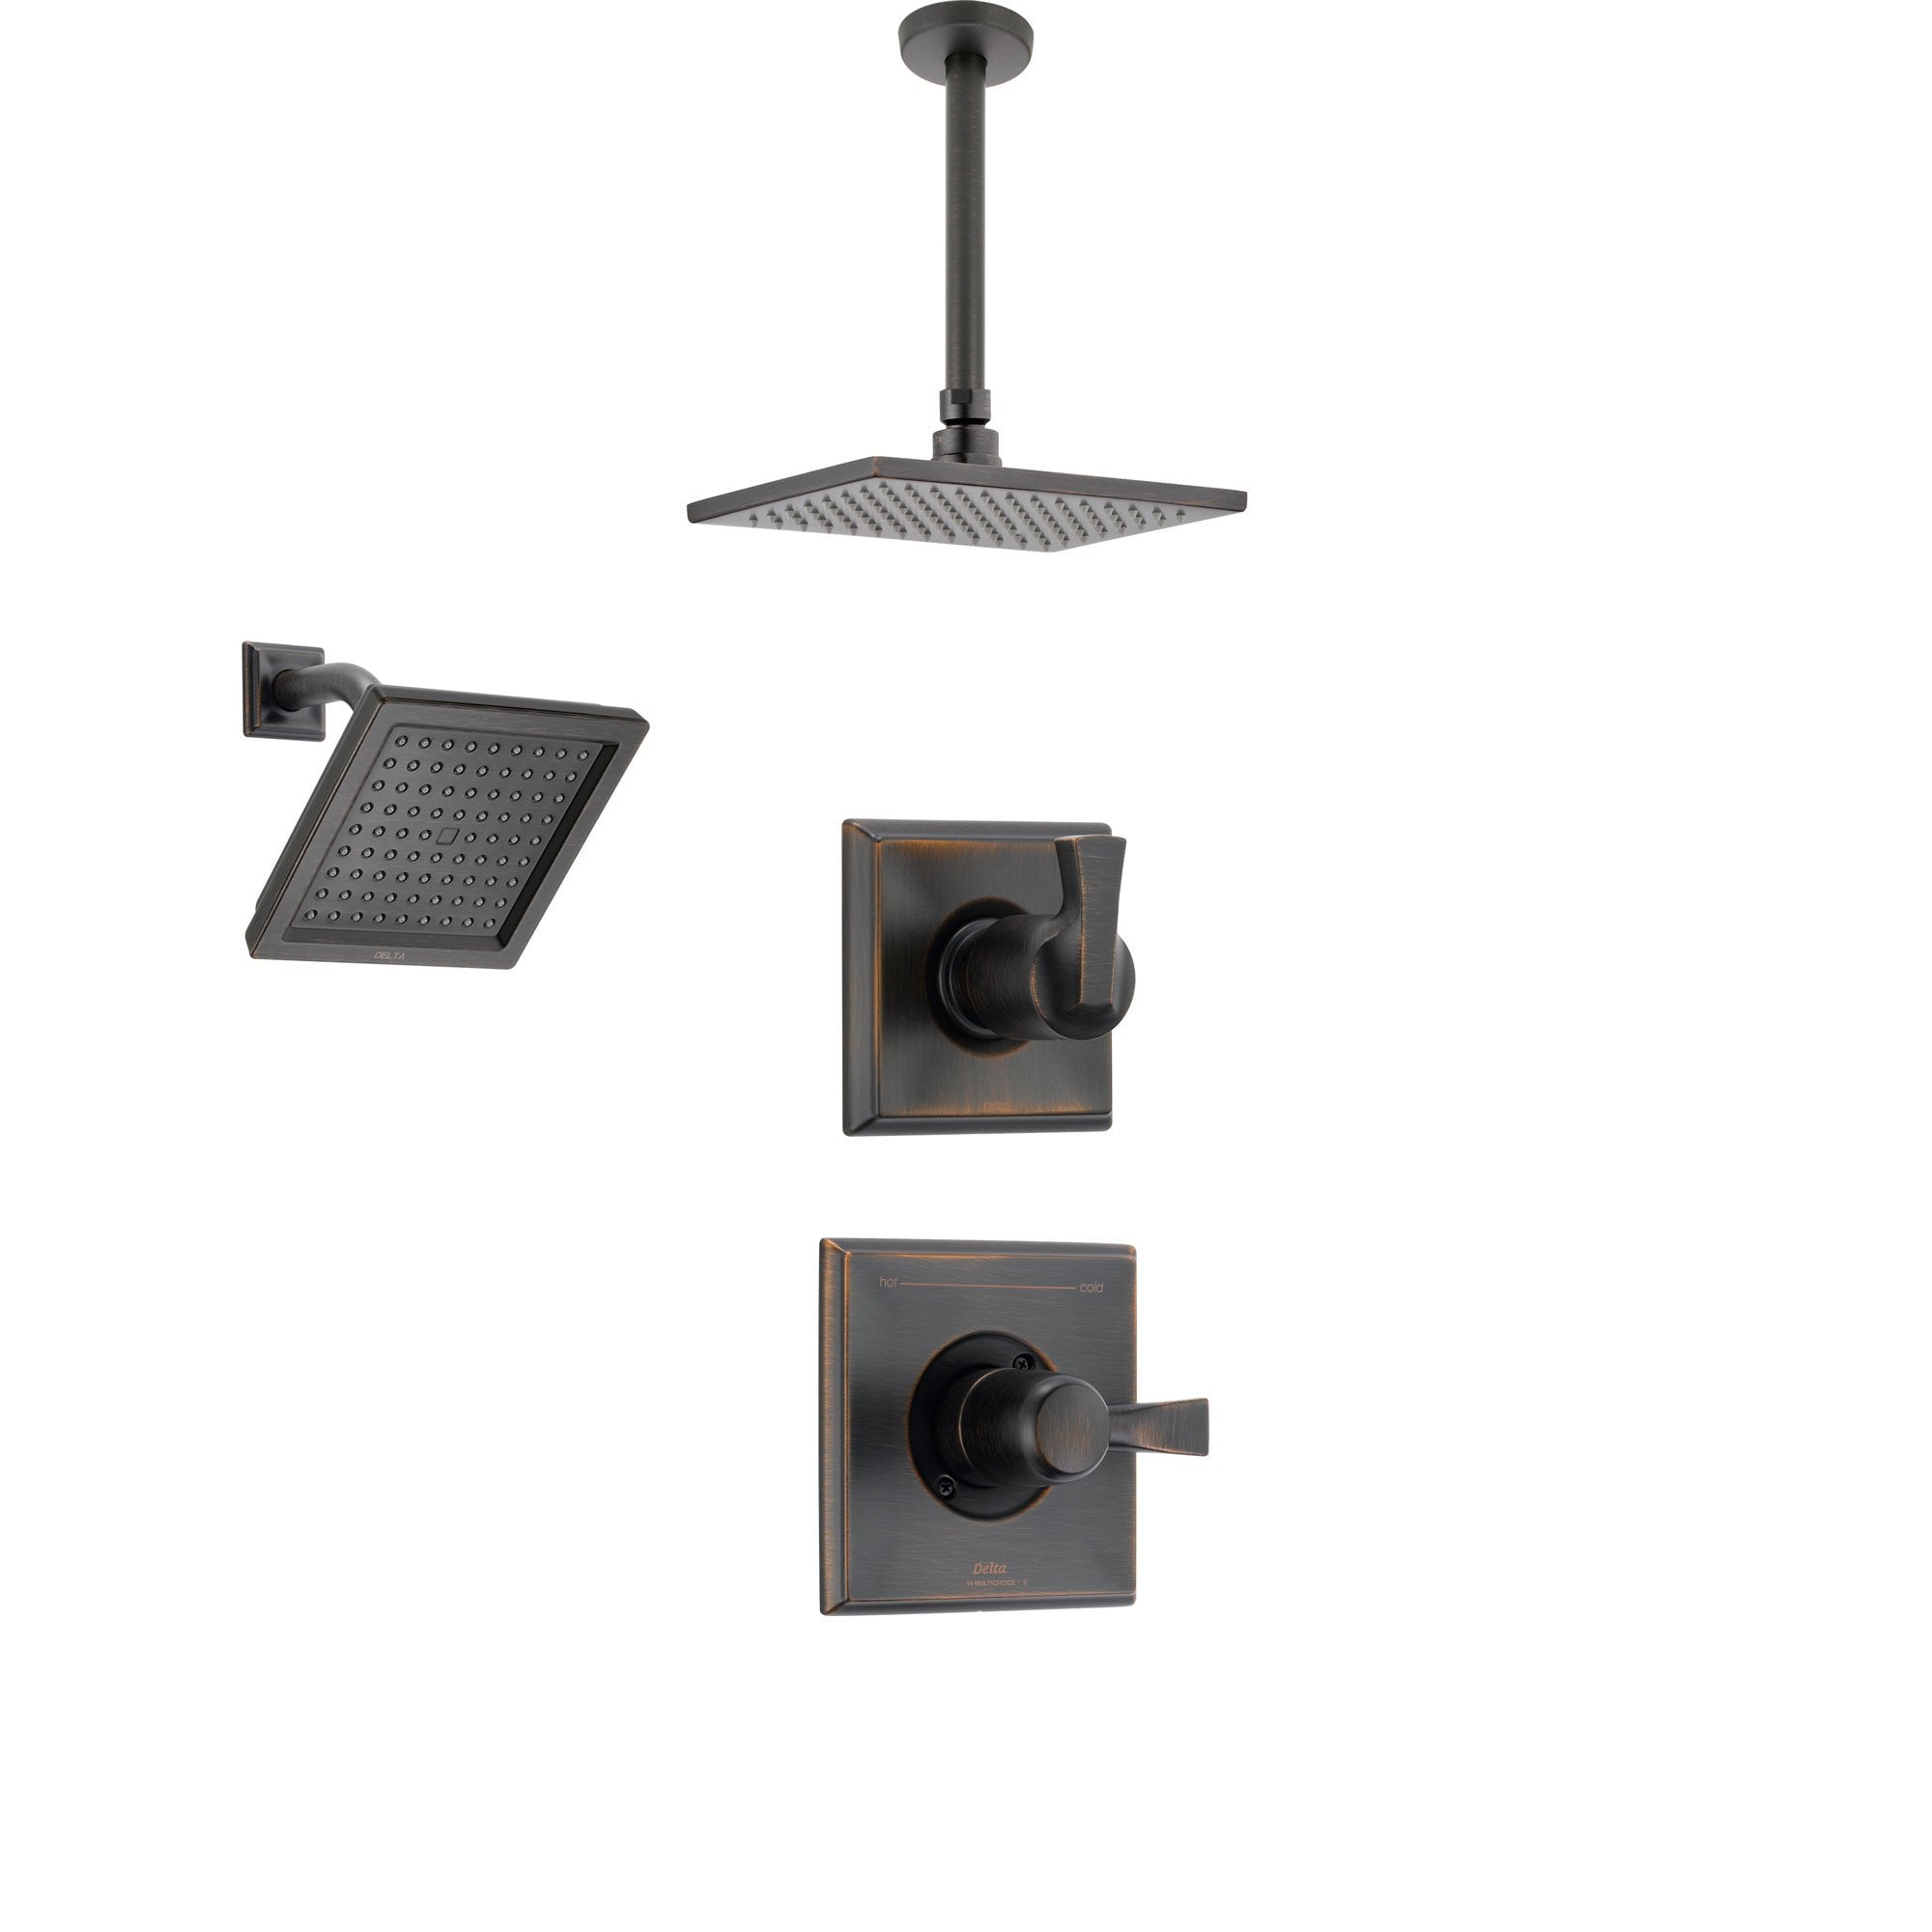 Delta Dryden Venetian Bronze Shower System with Normal Shower Handle, 3-setting Diverter, Large Square Modern Ceiling Mount Showerhead, and Wall Mount Showerhead SS145184RB